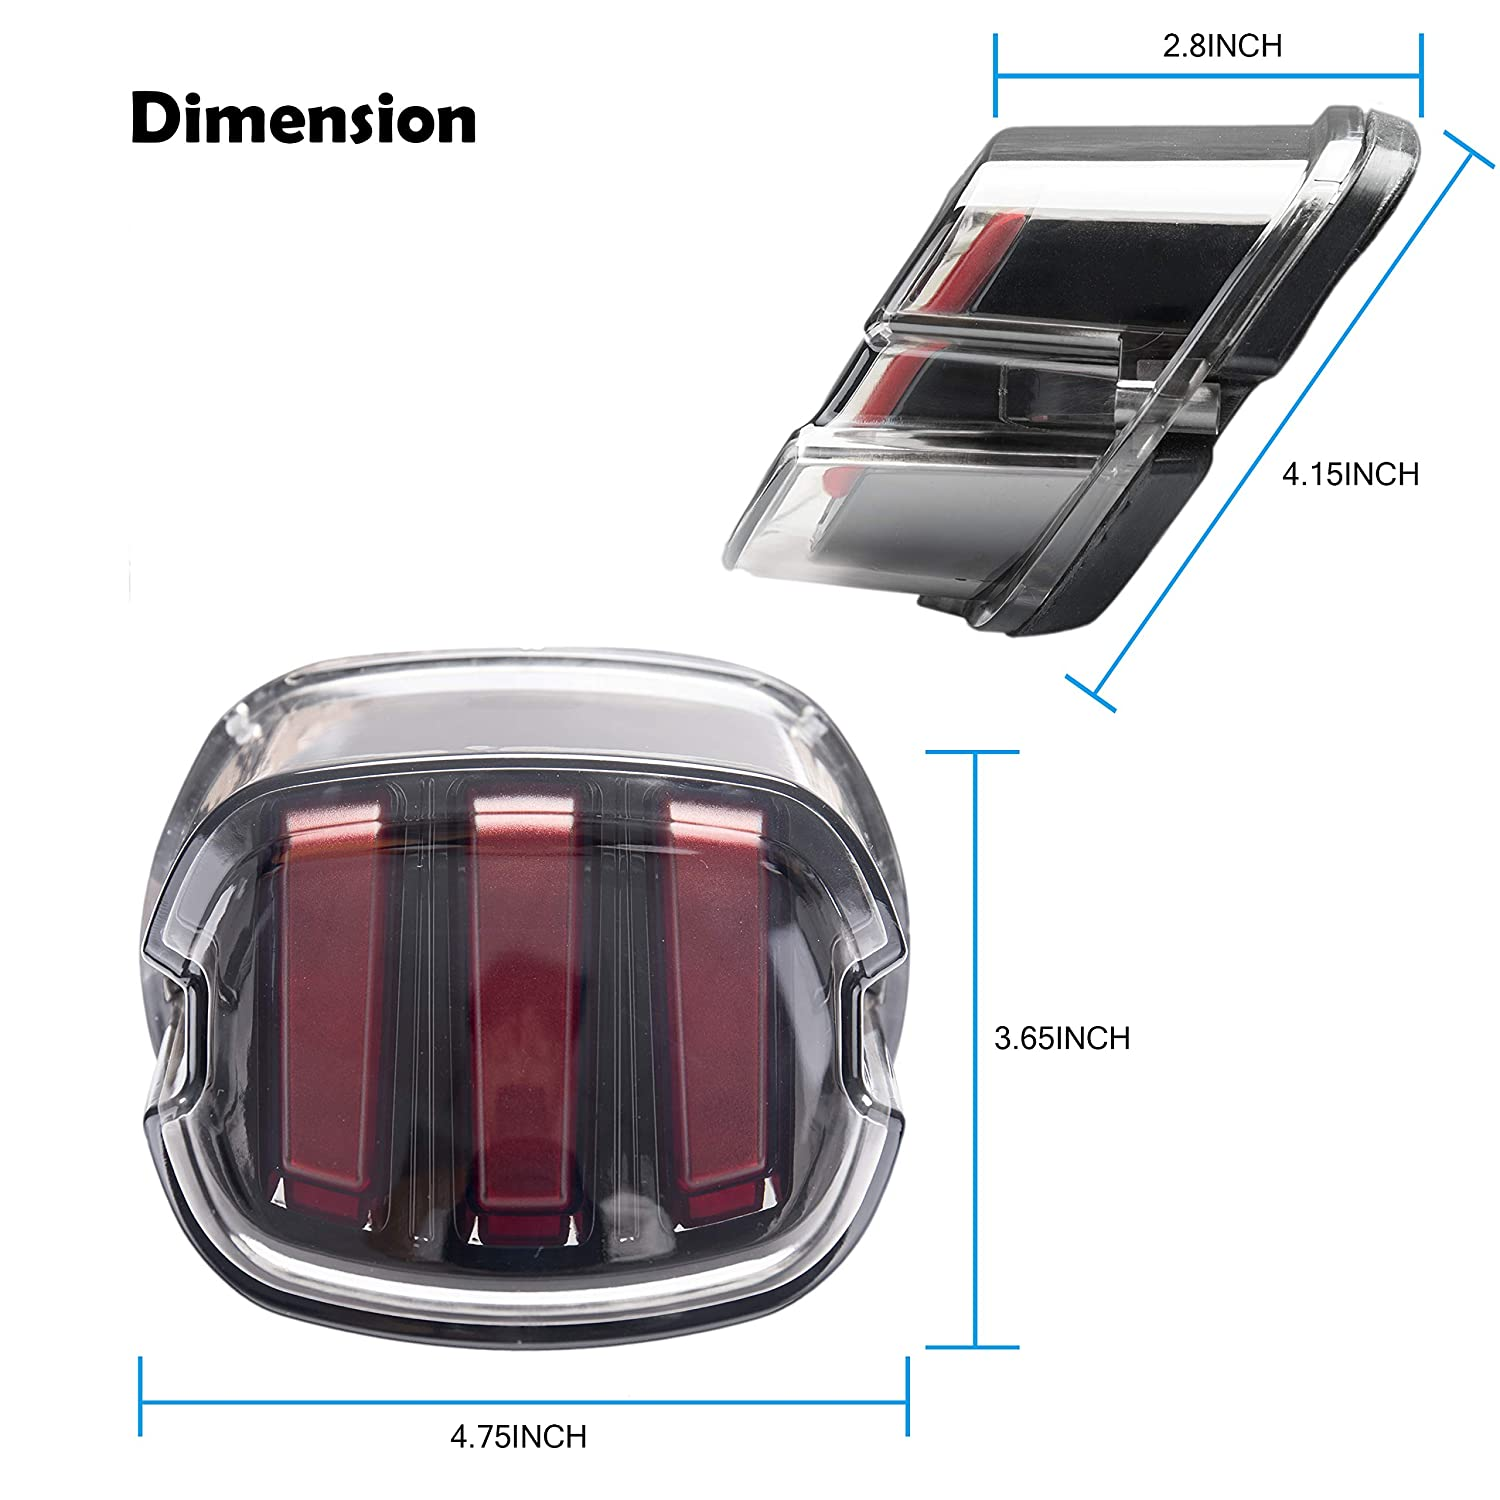 Harley Tail Light LED Brake Running Lights Smoked Lay Down Style Motorcycle Tail Light for Harley Sportster Softail Dyna Road King Road Glide